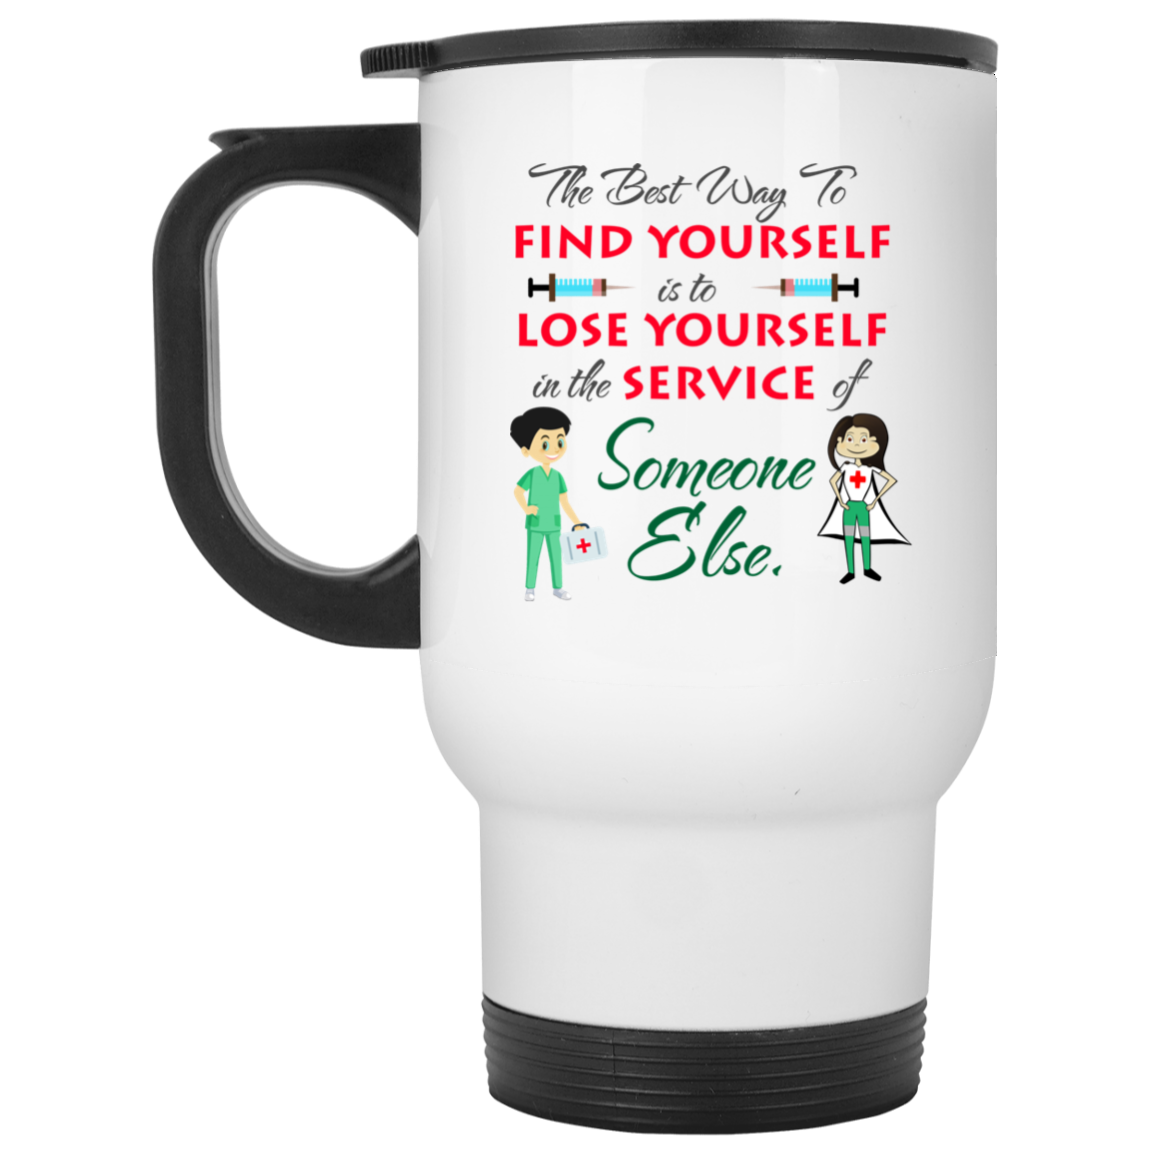 The Best Way To Find Yourself Is To Lose Yourself - White Travel Mug